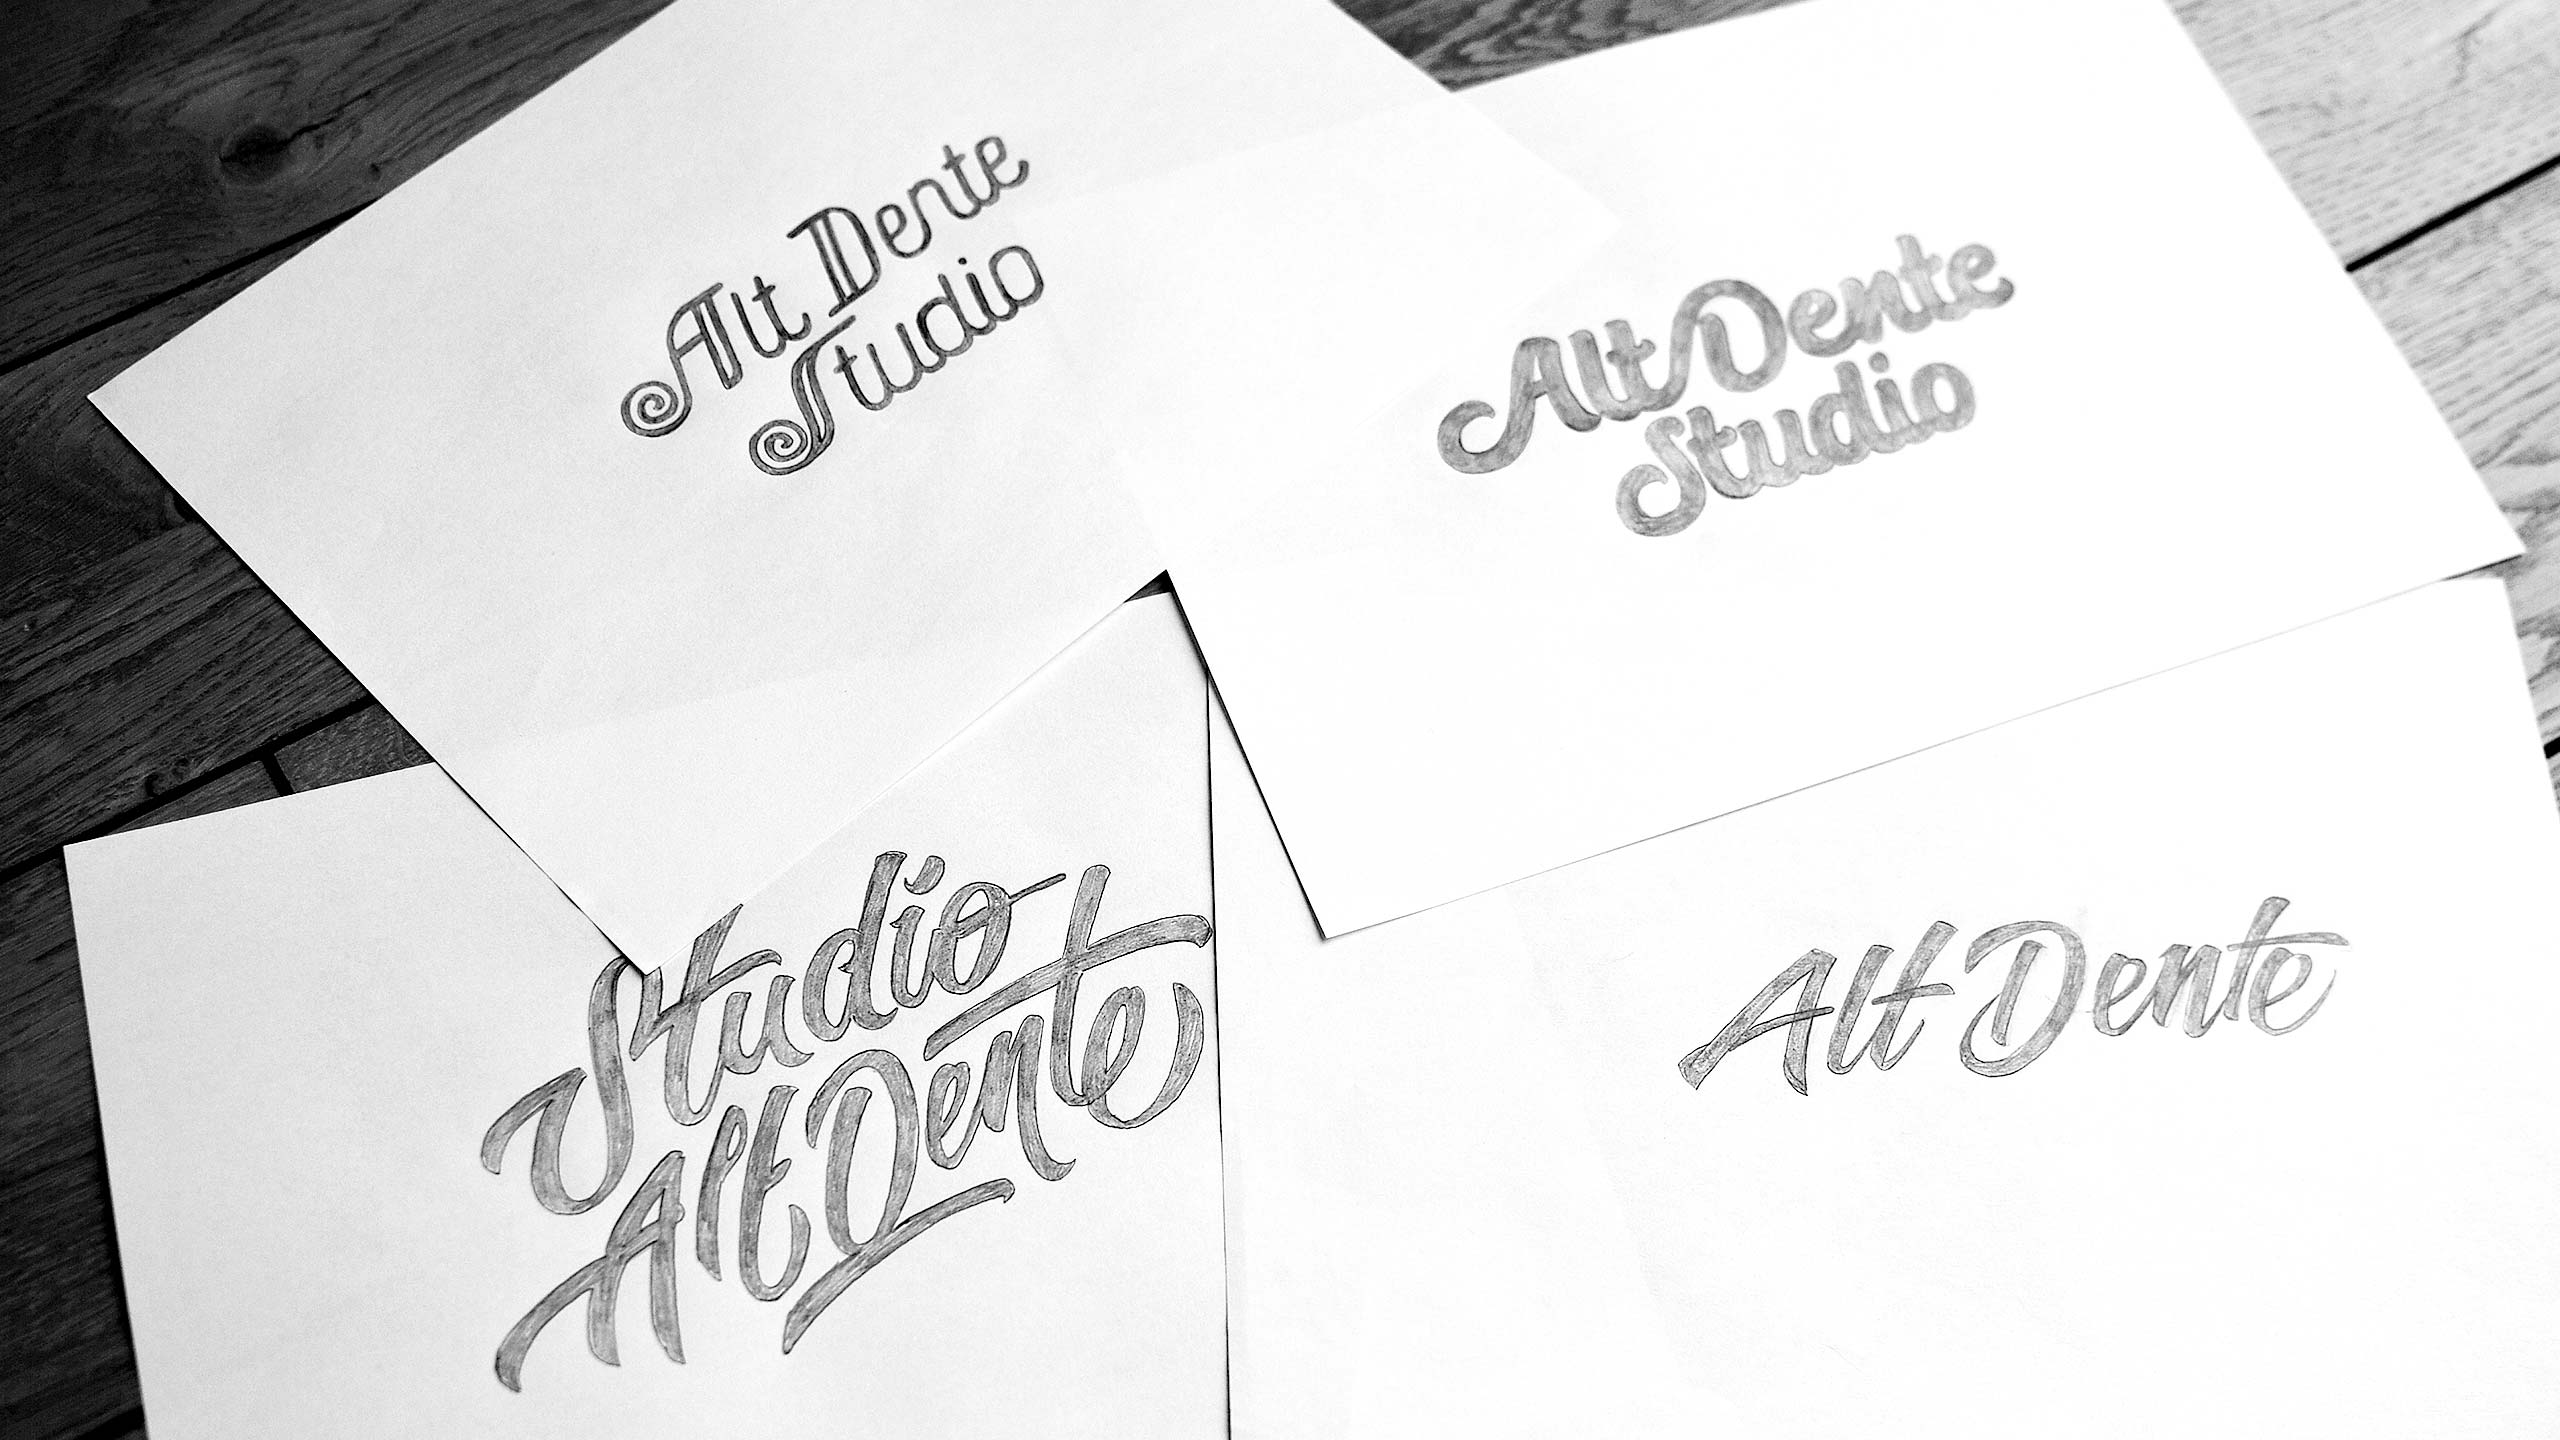 Logo design sketches for Alt Dente Studio